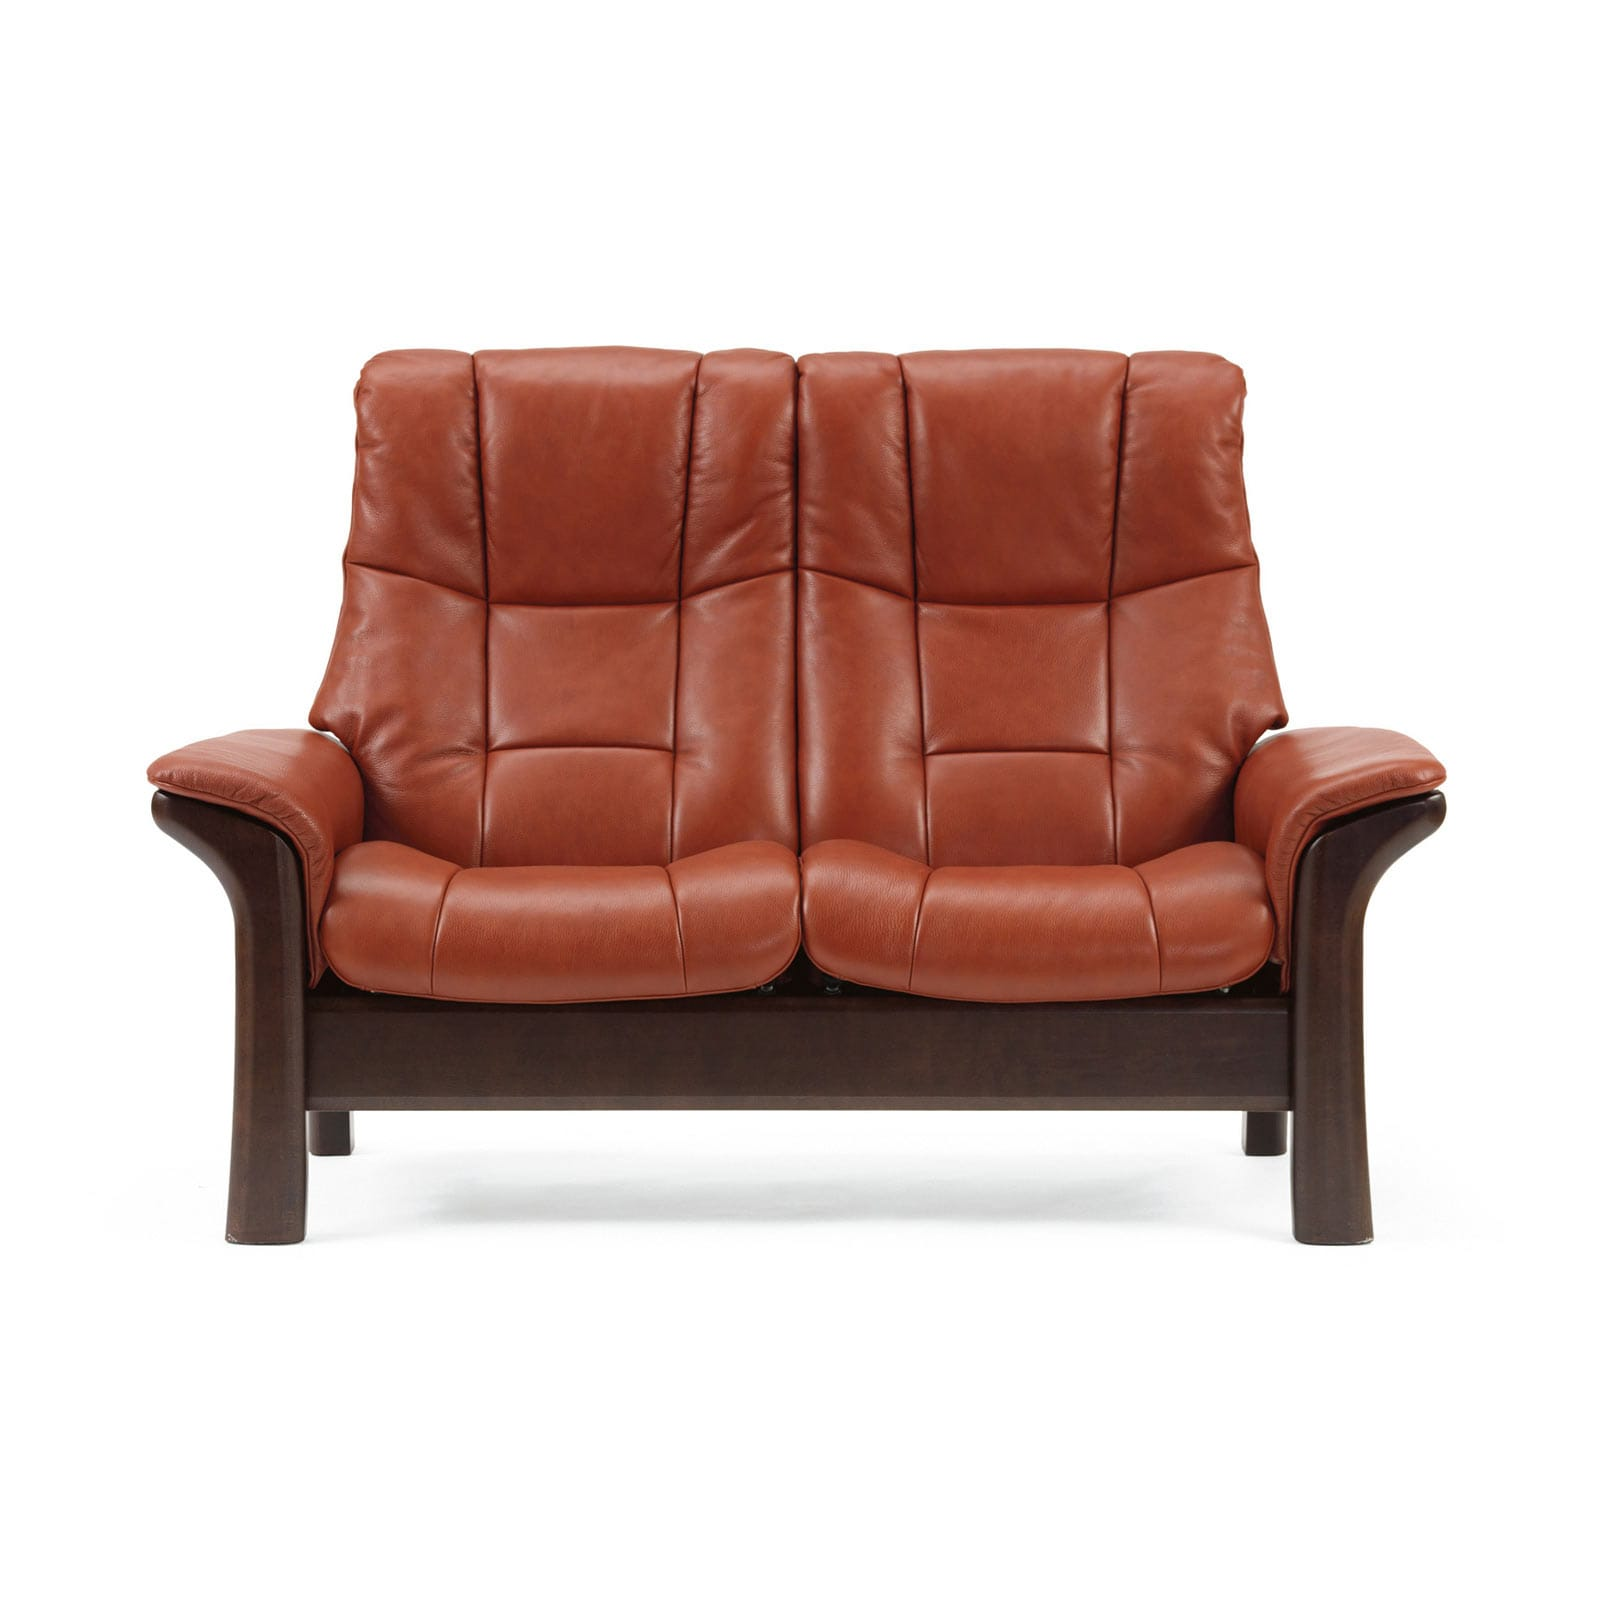 Stressless windsor sofa for Sofa 2 sitzer